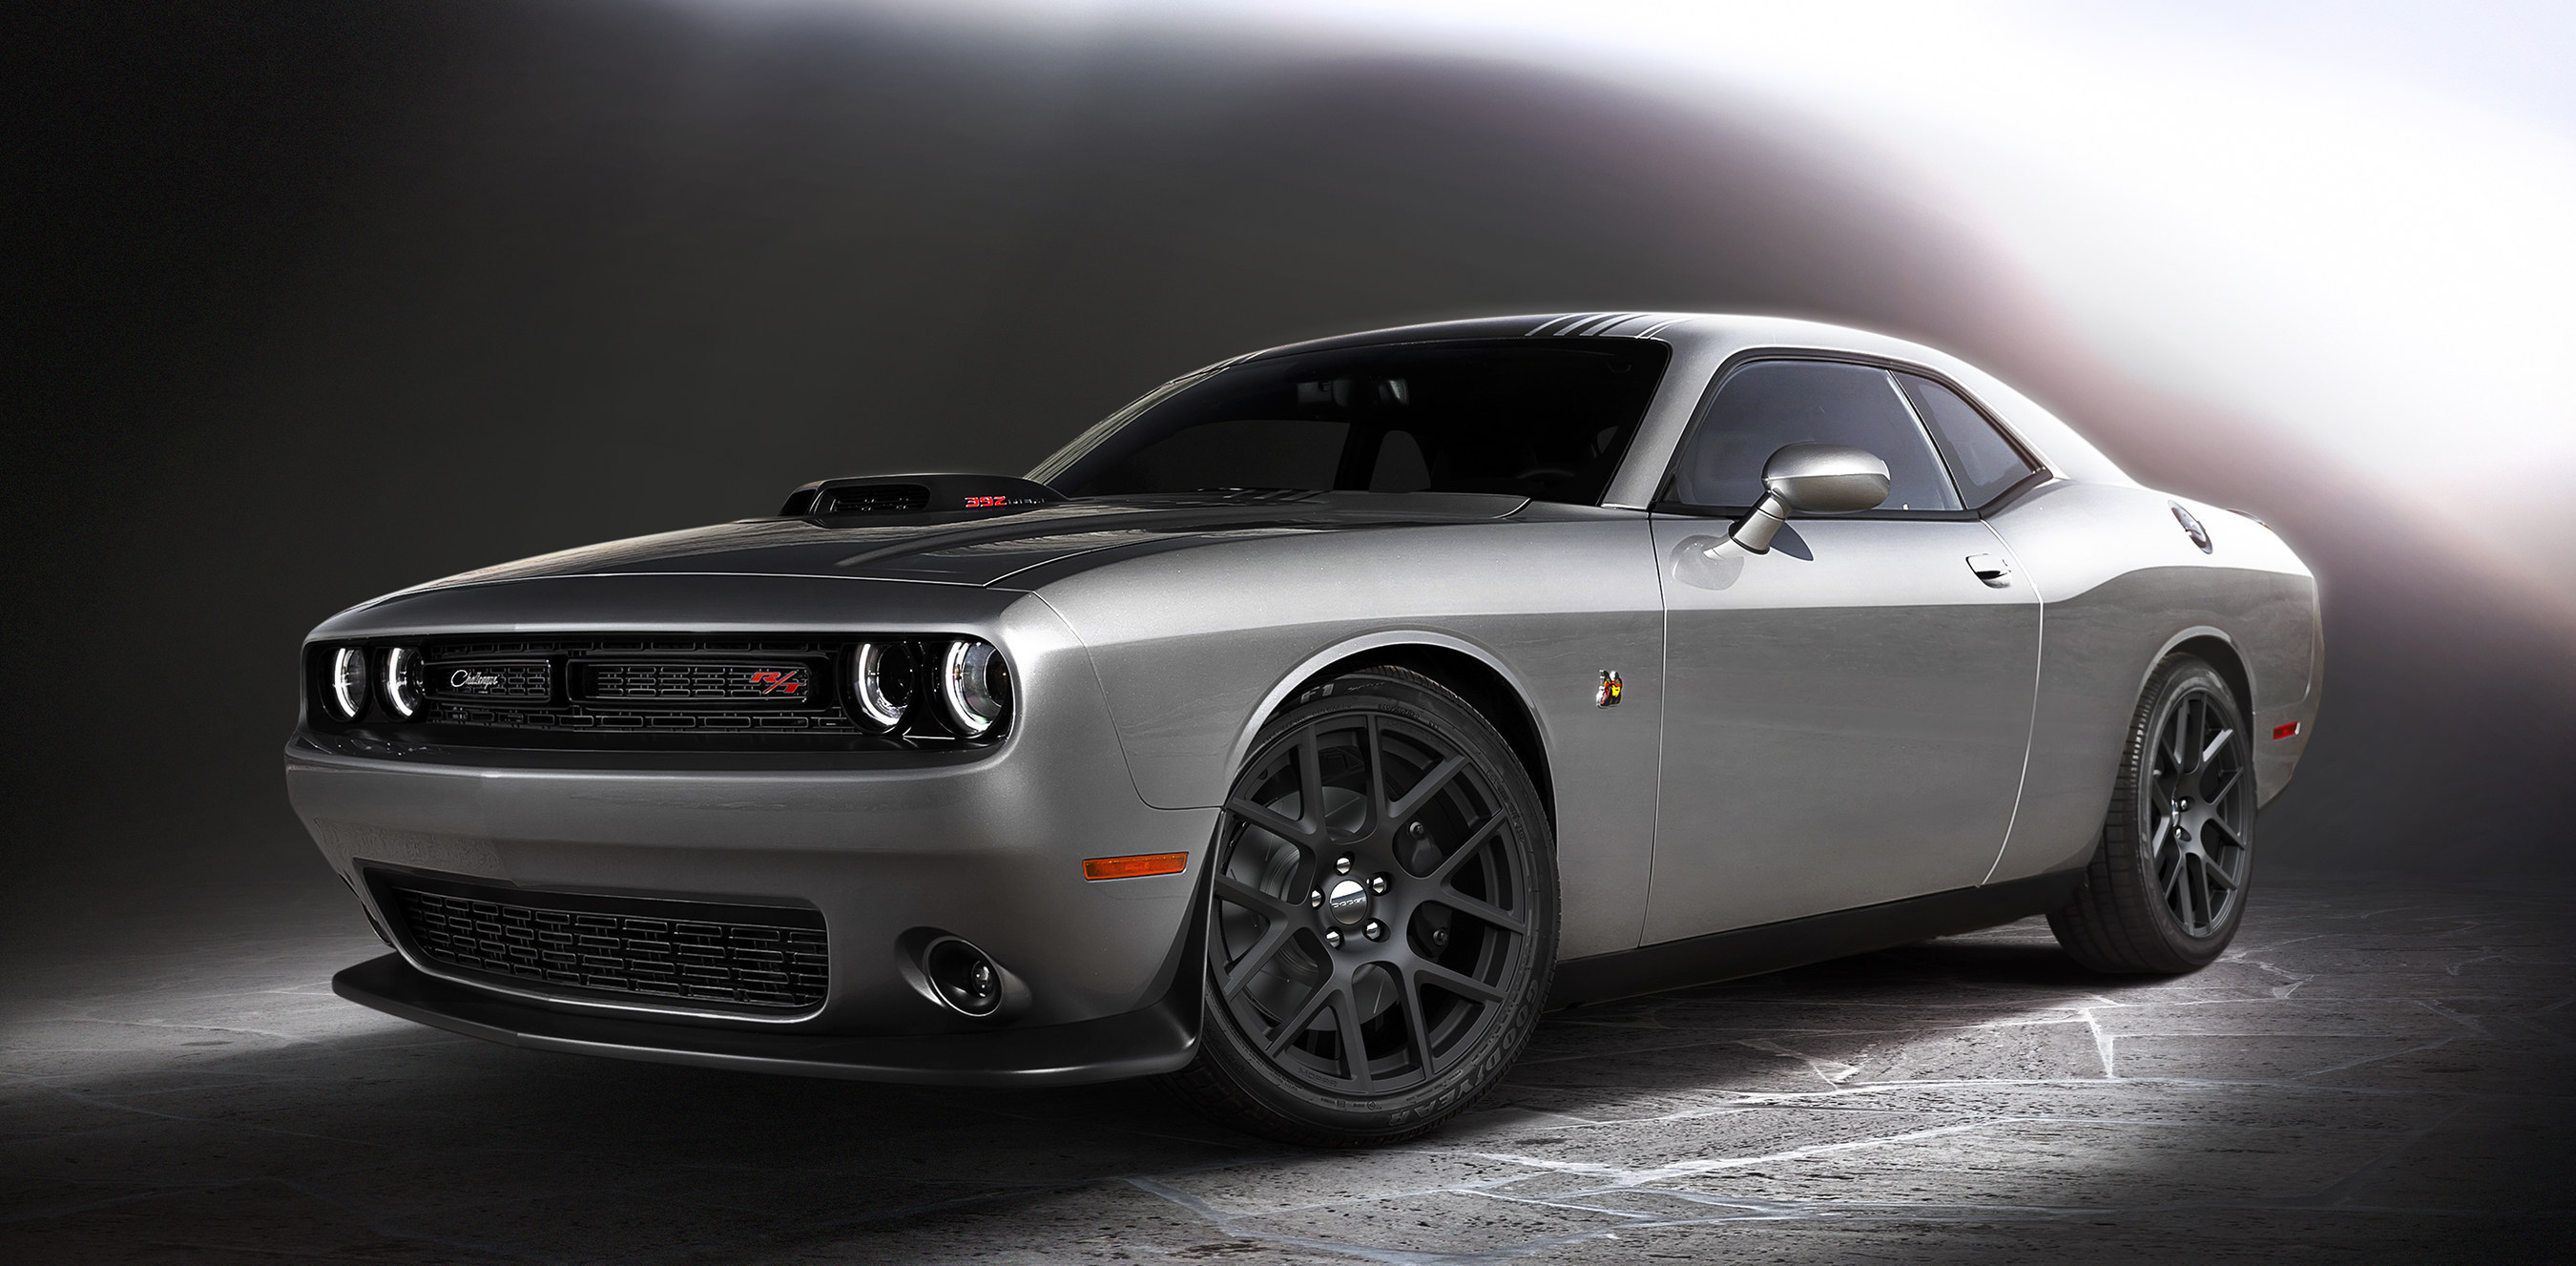 Dodge is Shaking up the Muscle Car Segment Again; Opens Orders for New 2015 Challenger 'Shaker' Models